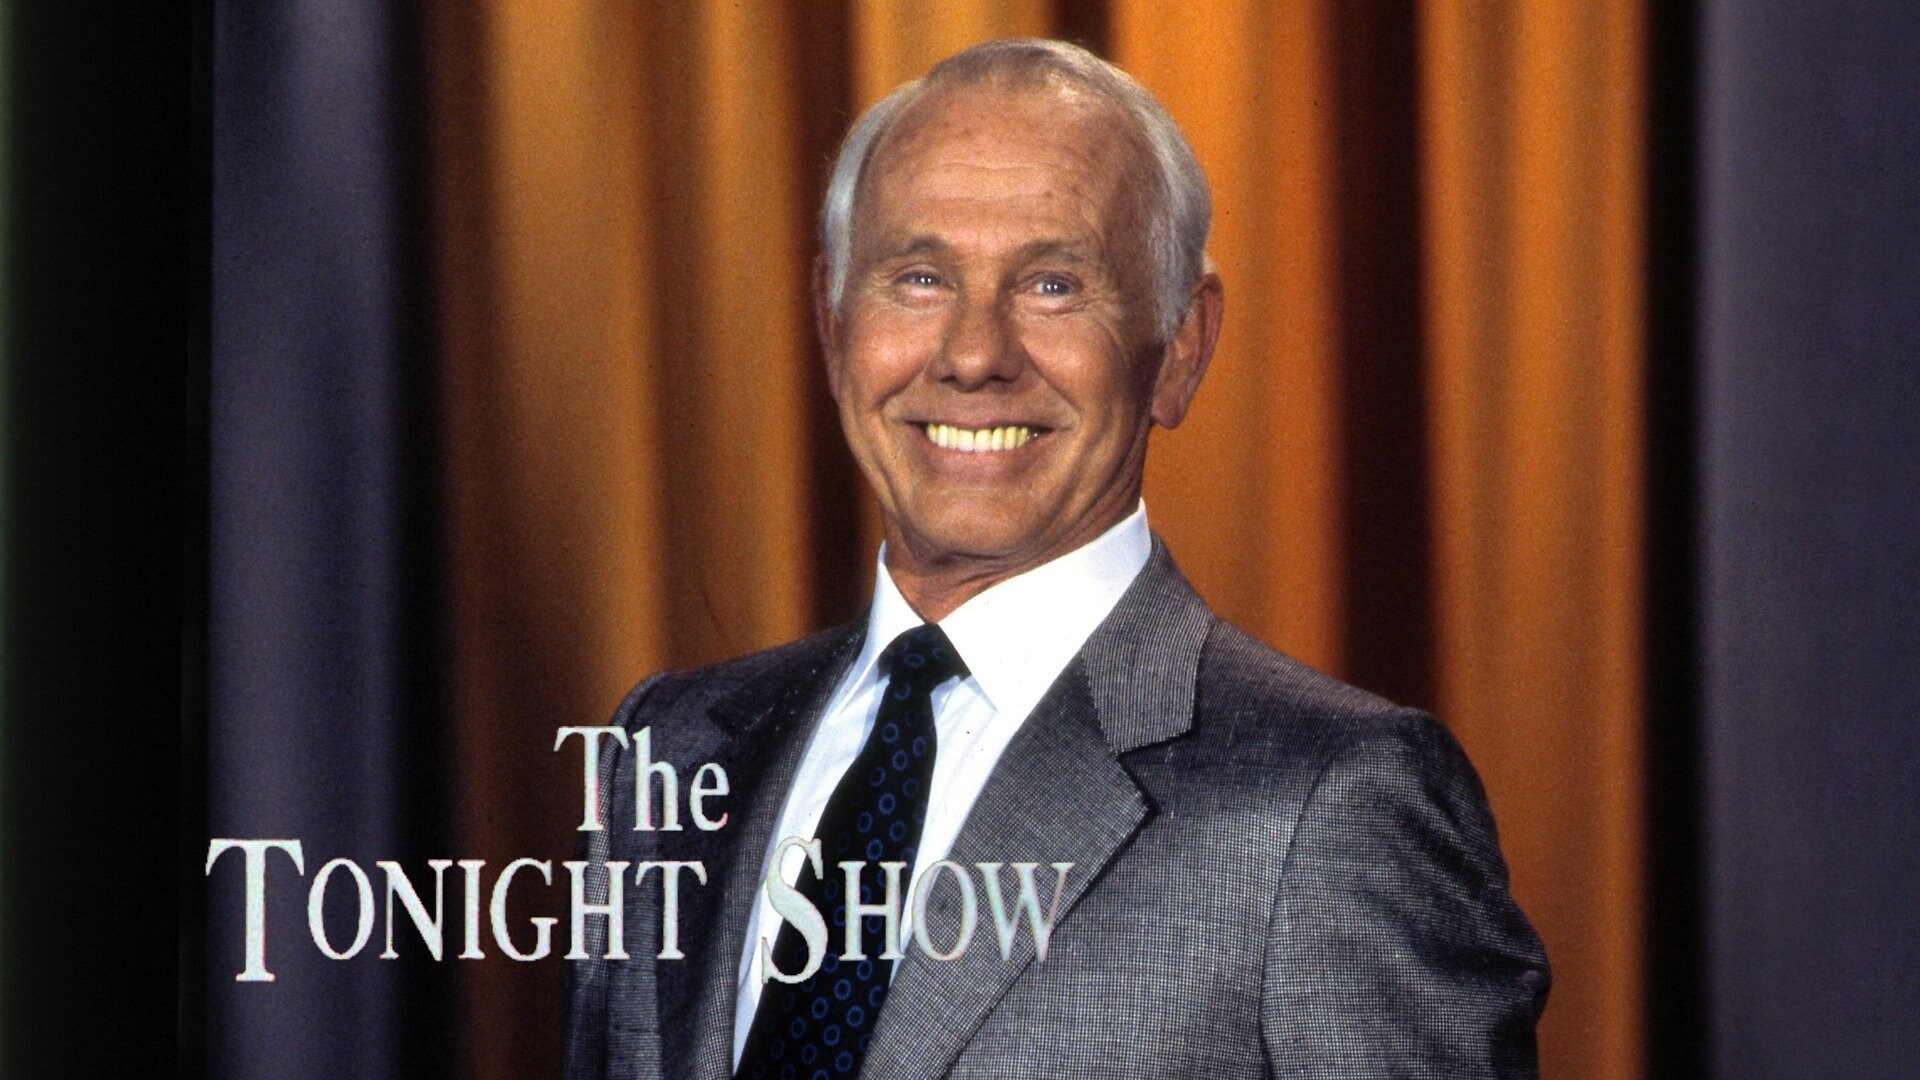 The Johnny Carson Show: The Best Of George Carlin (11/26/86)